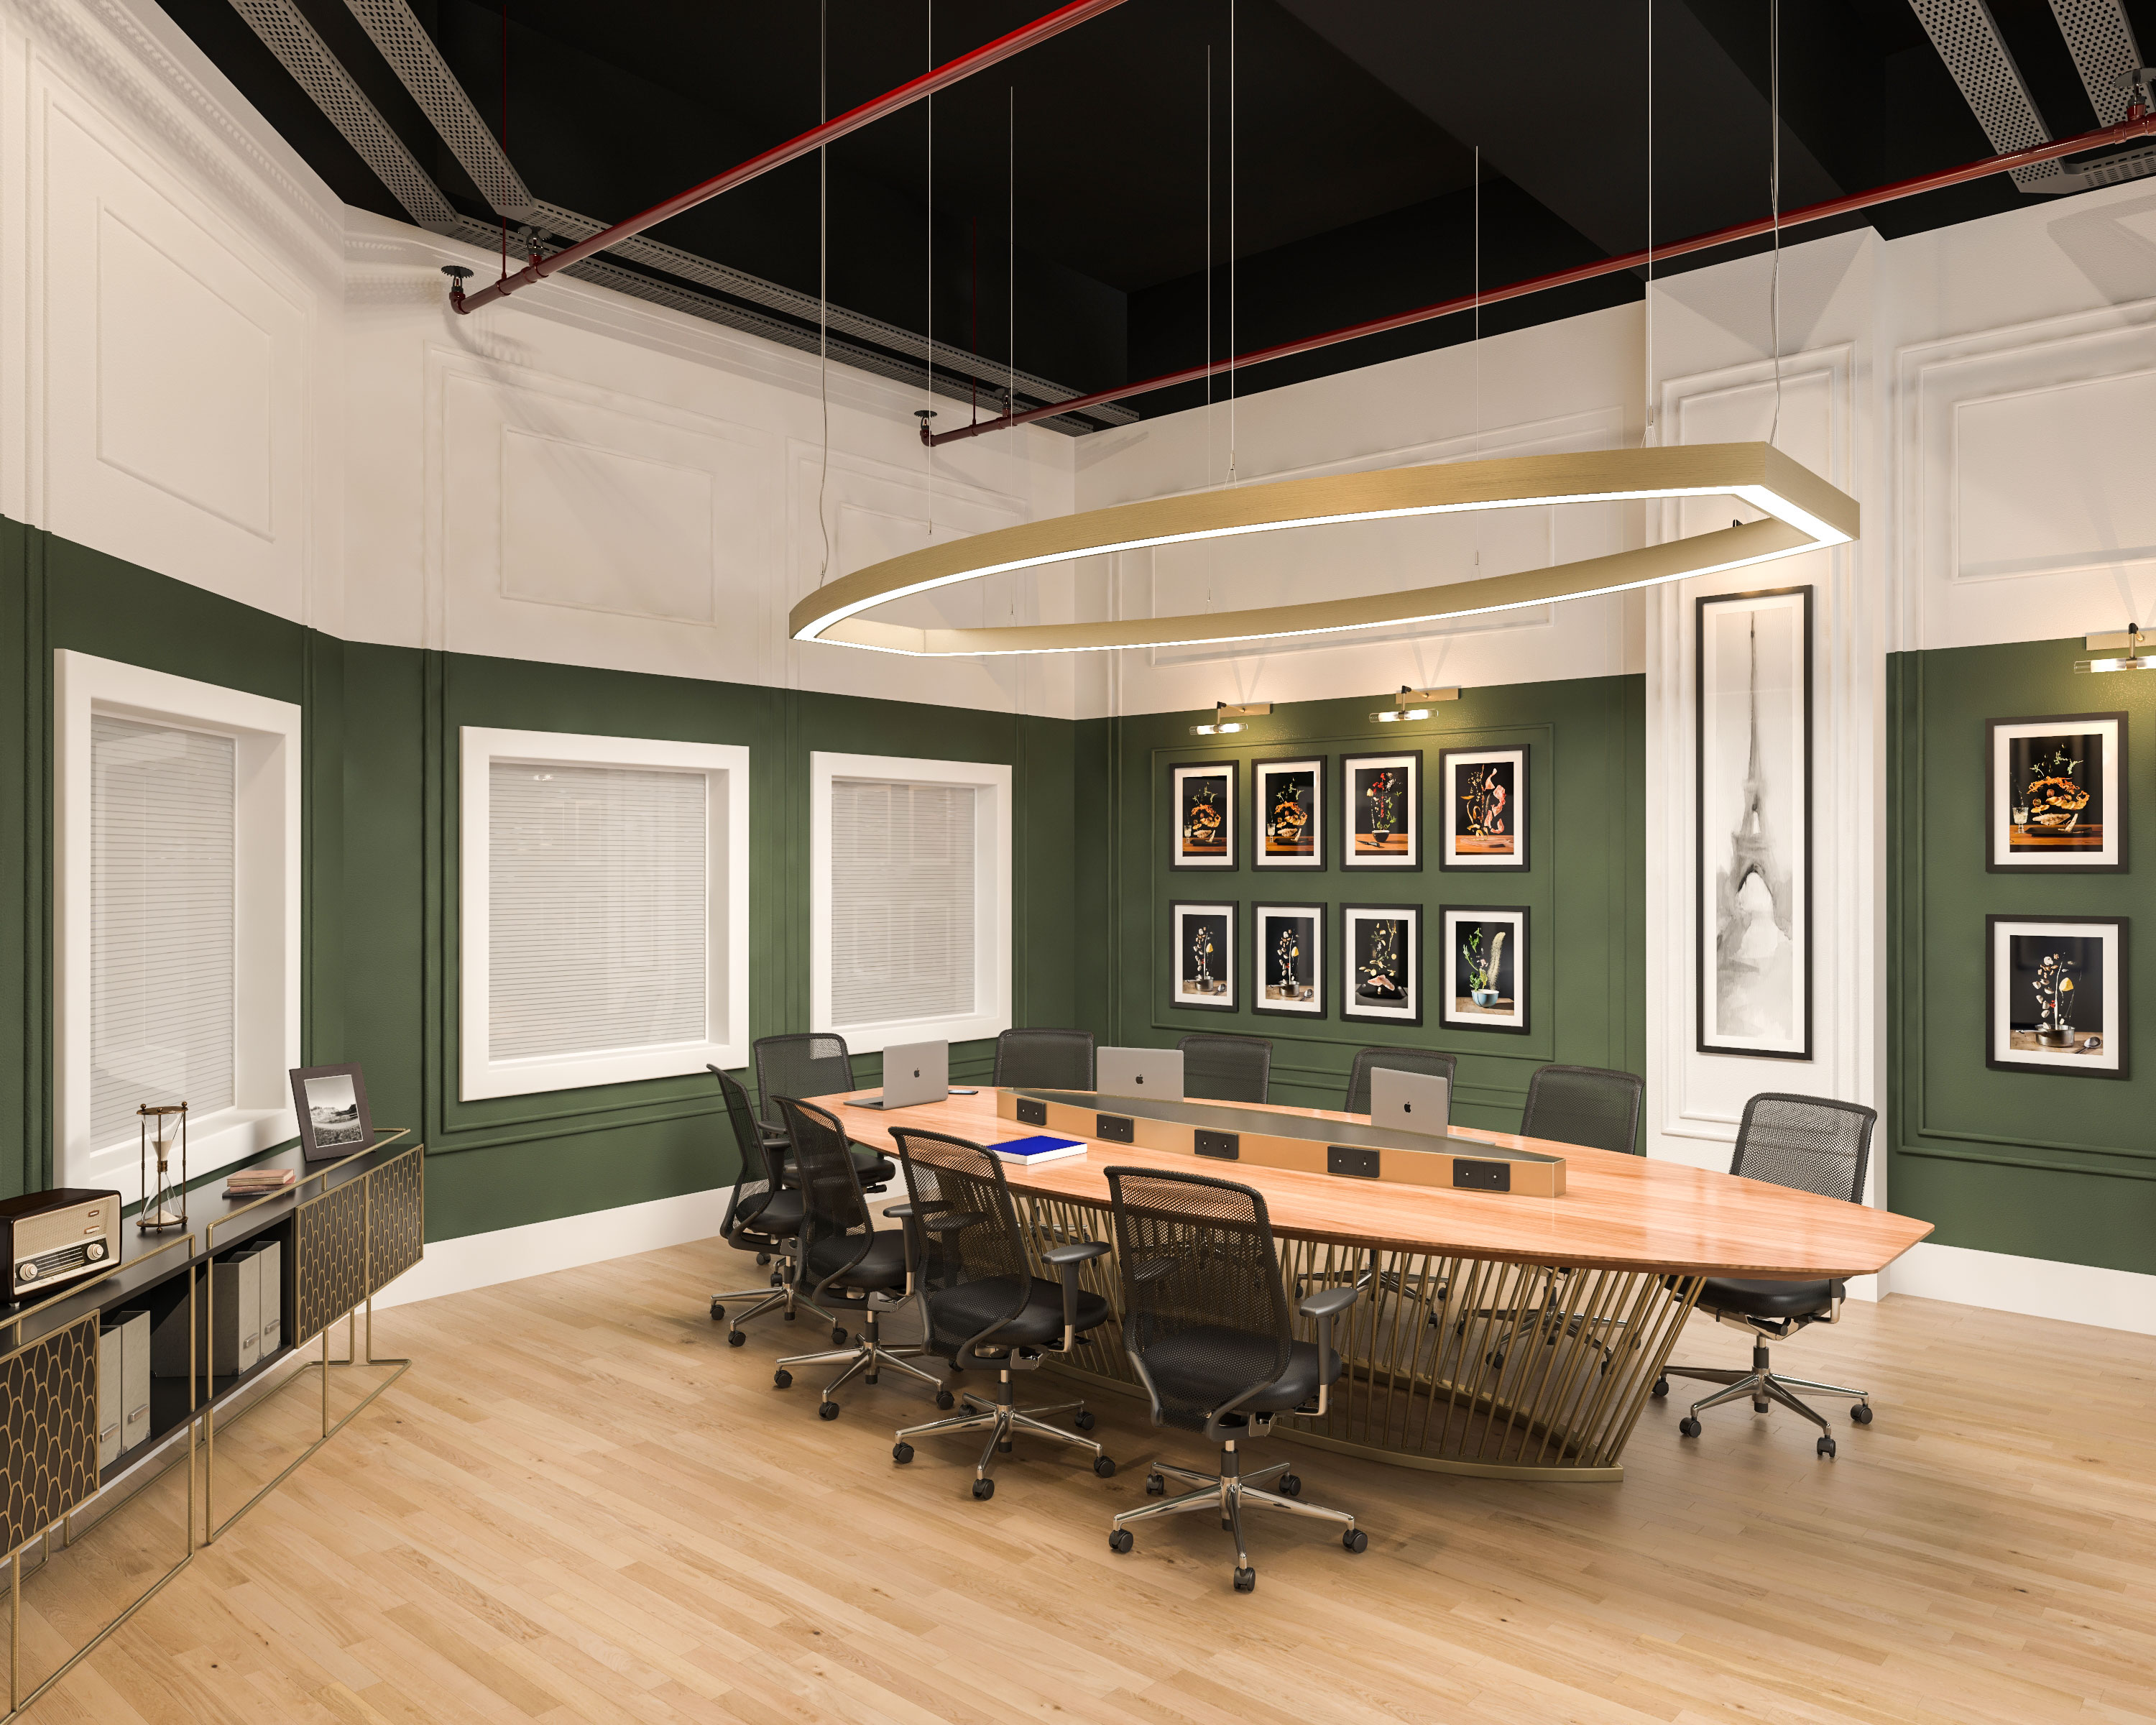 meeting_room_interior_design_executive_room_green_interiors_1